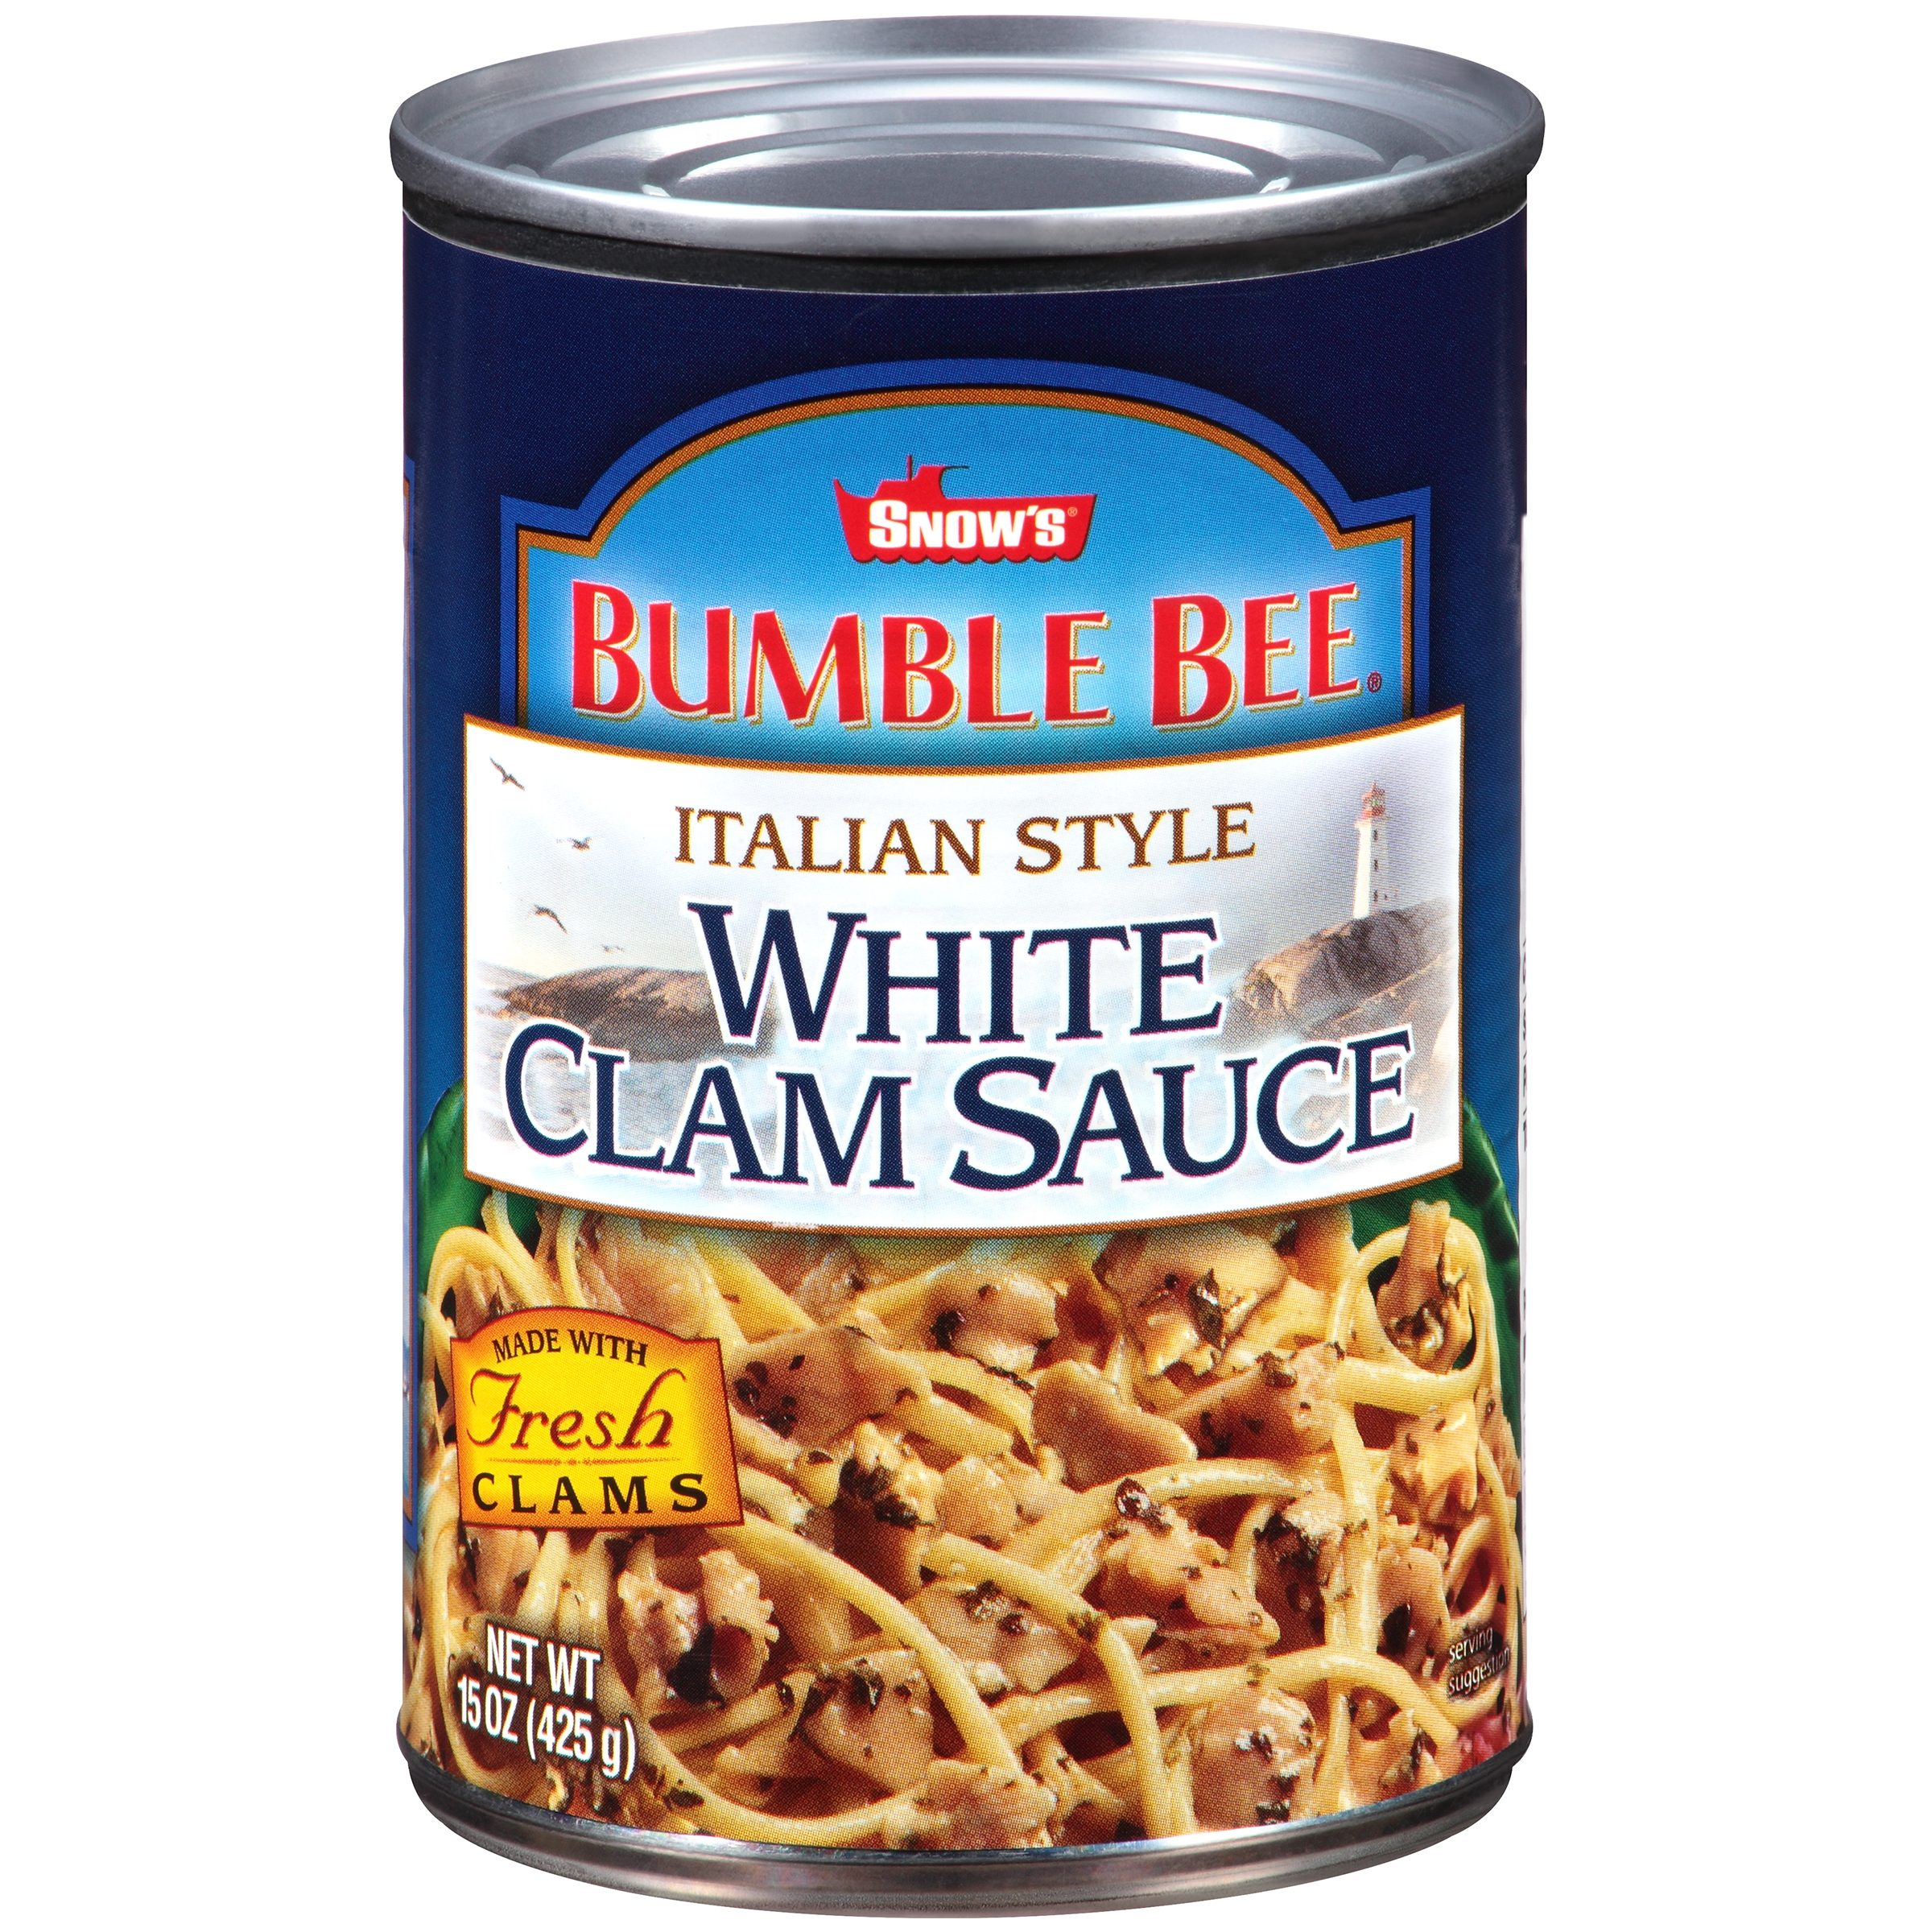 Bumble Bee Italian Style White Clam Sauce, 15oz can